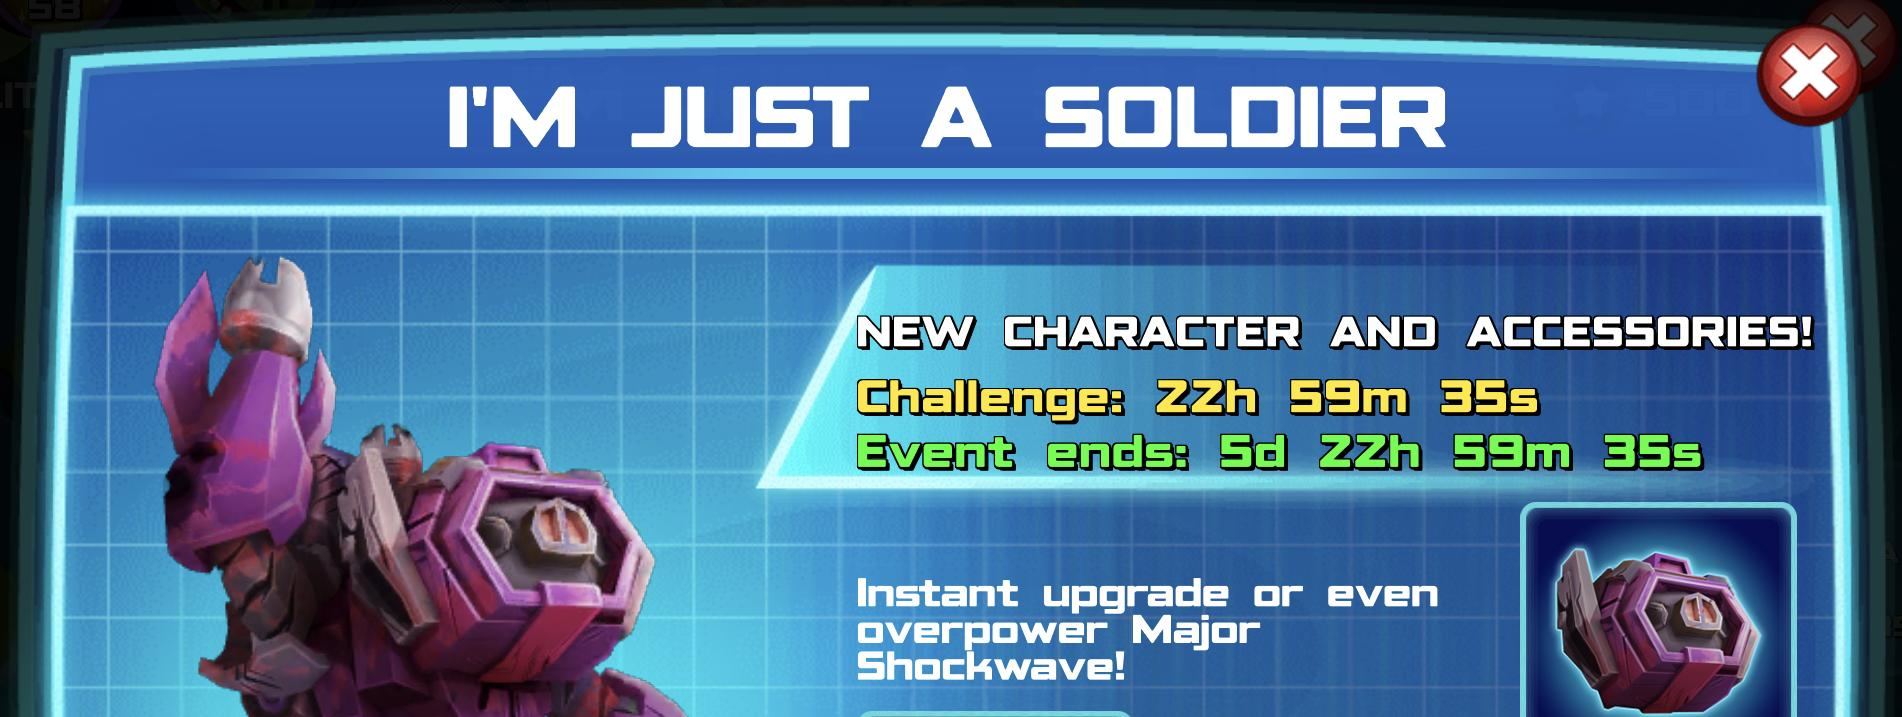 The event banner for I'm just a soldier